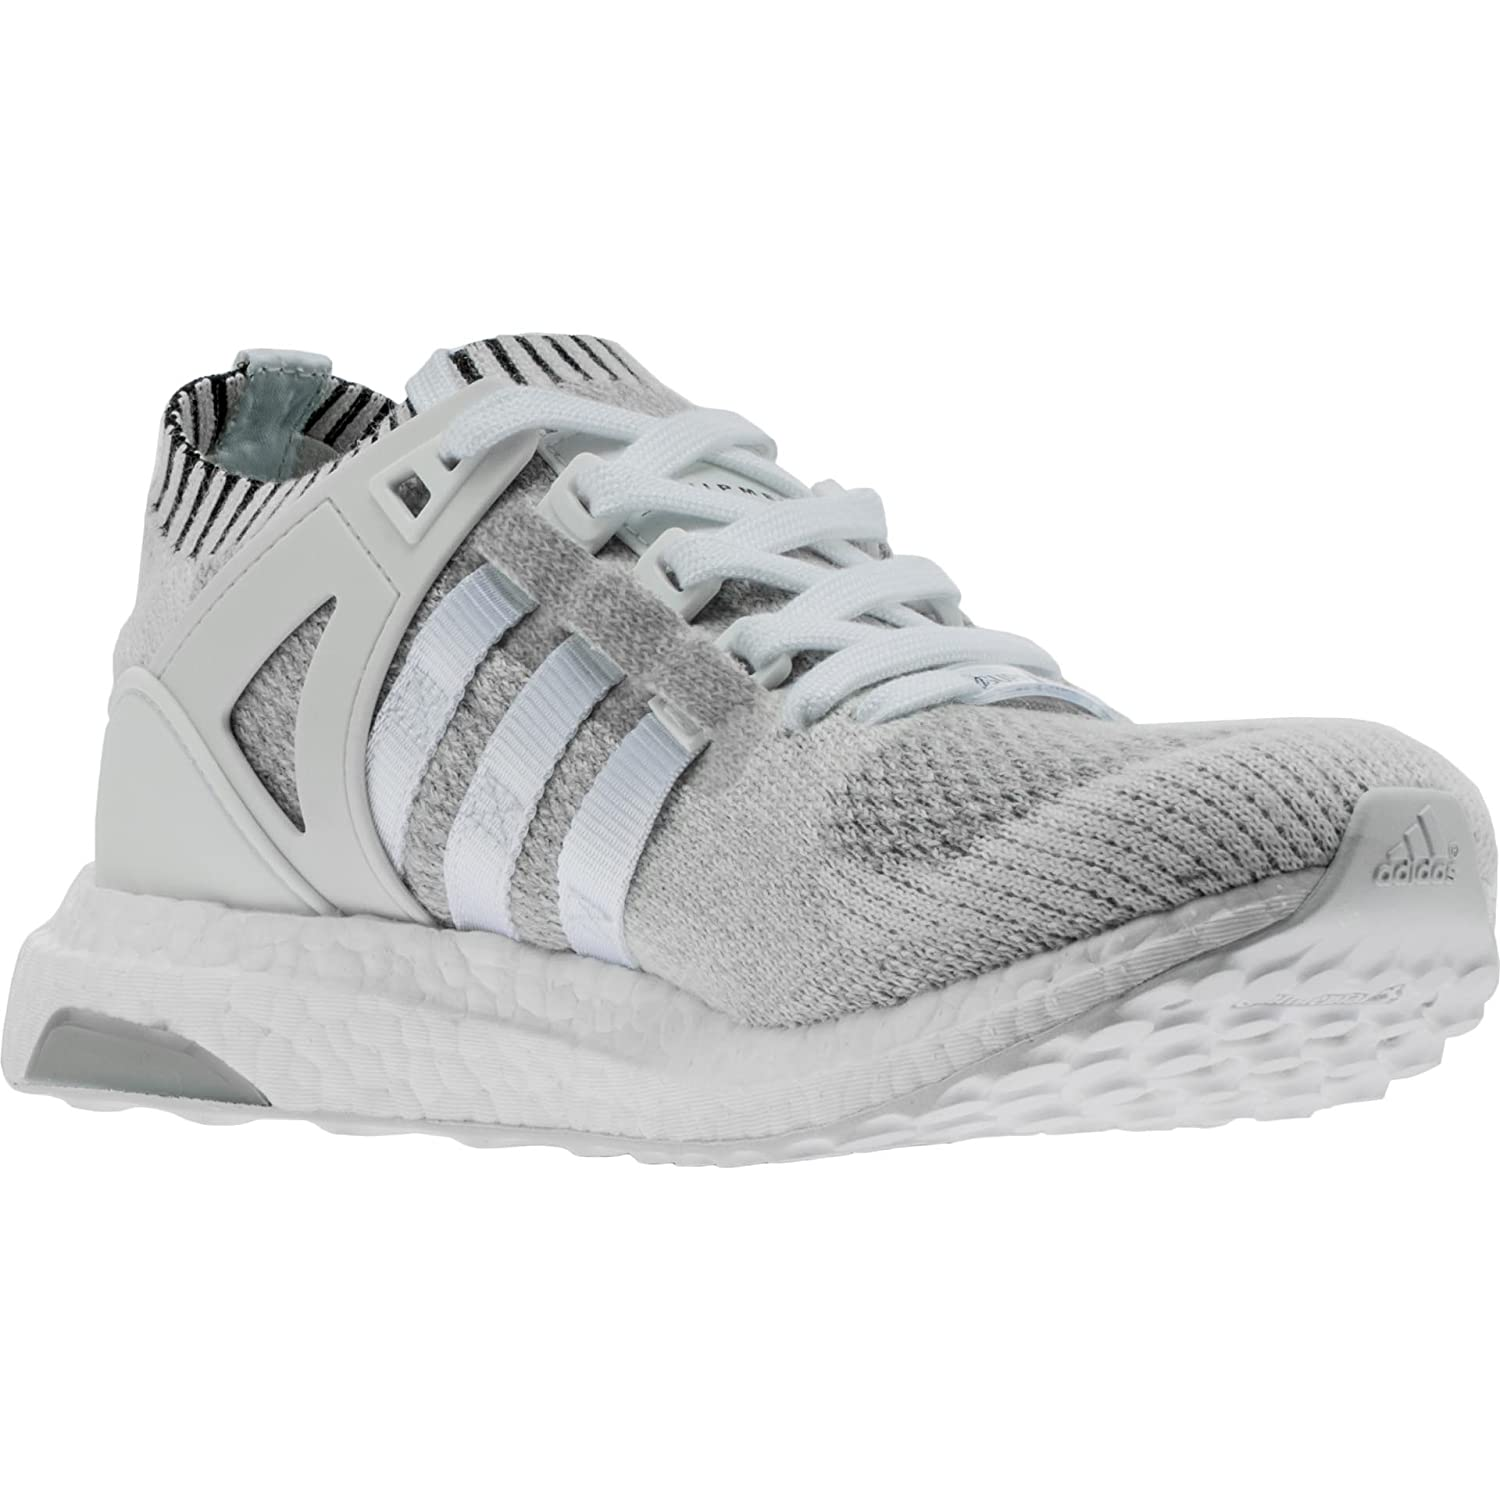 new product 7b7ff d2718 adidas EQT Support Ultra Pk Mens